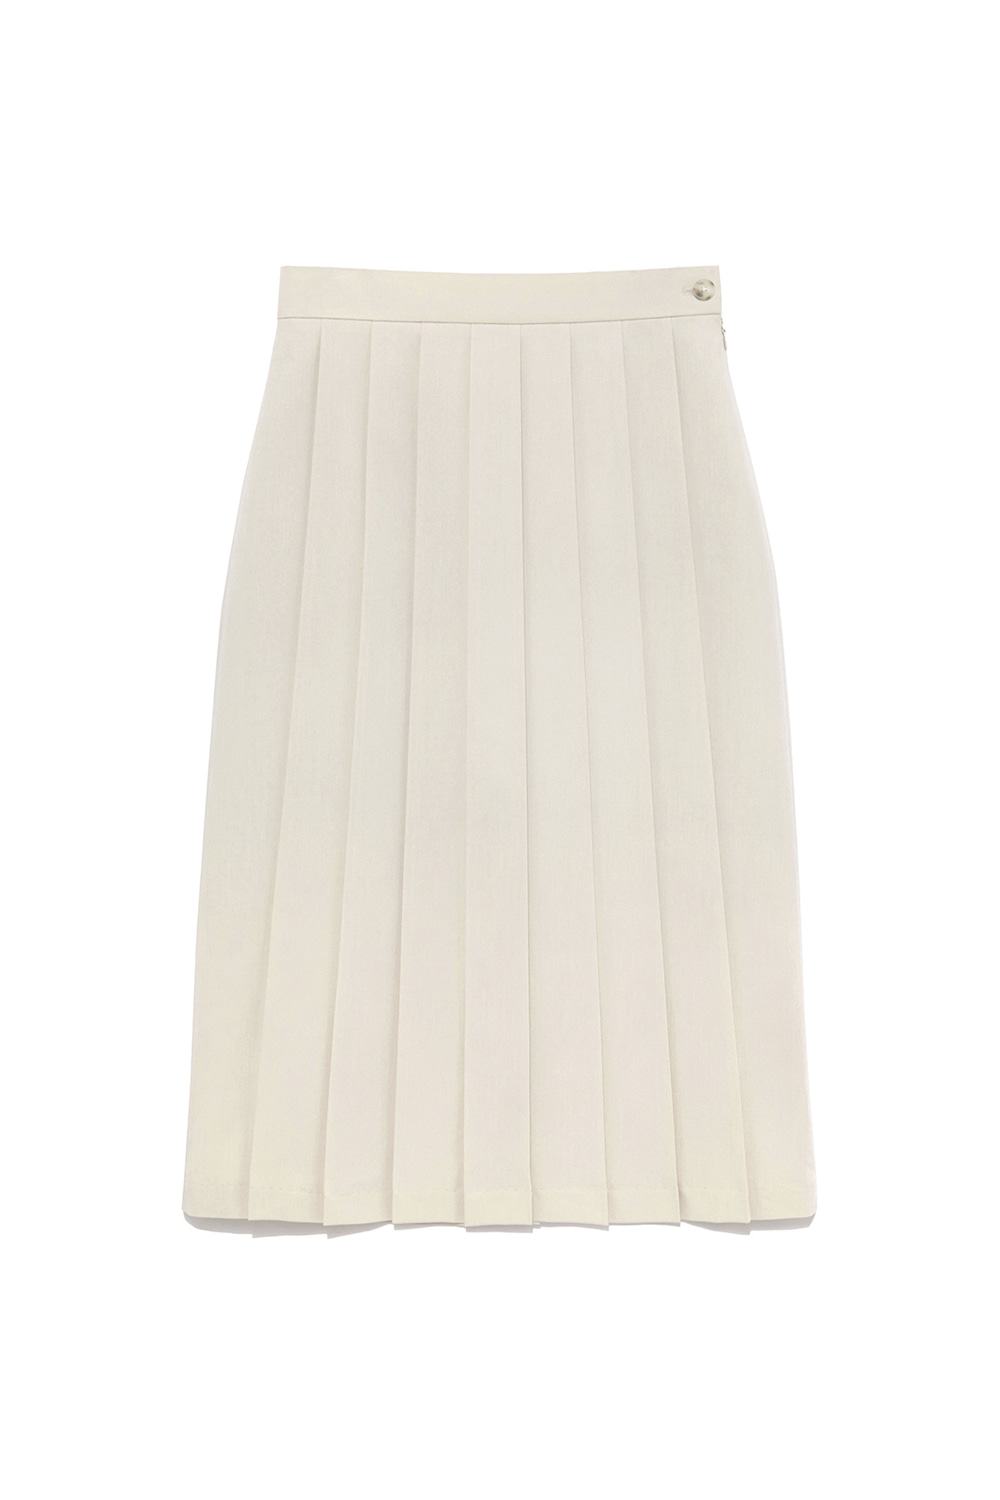 Unbalance Pleats Skirt Women [Ivory]